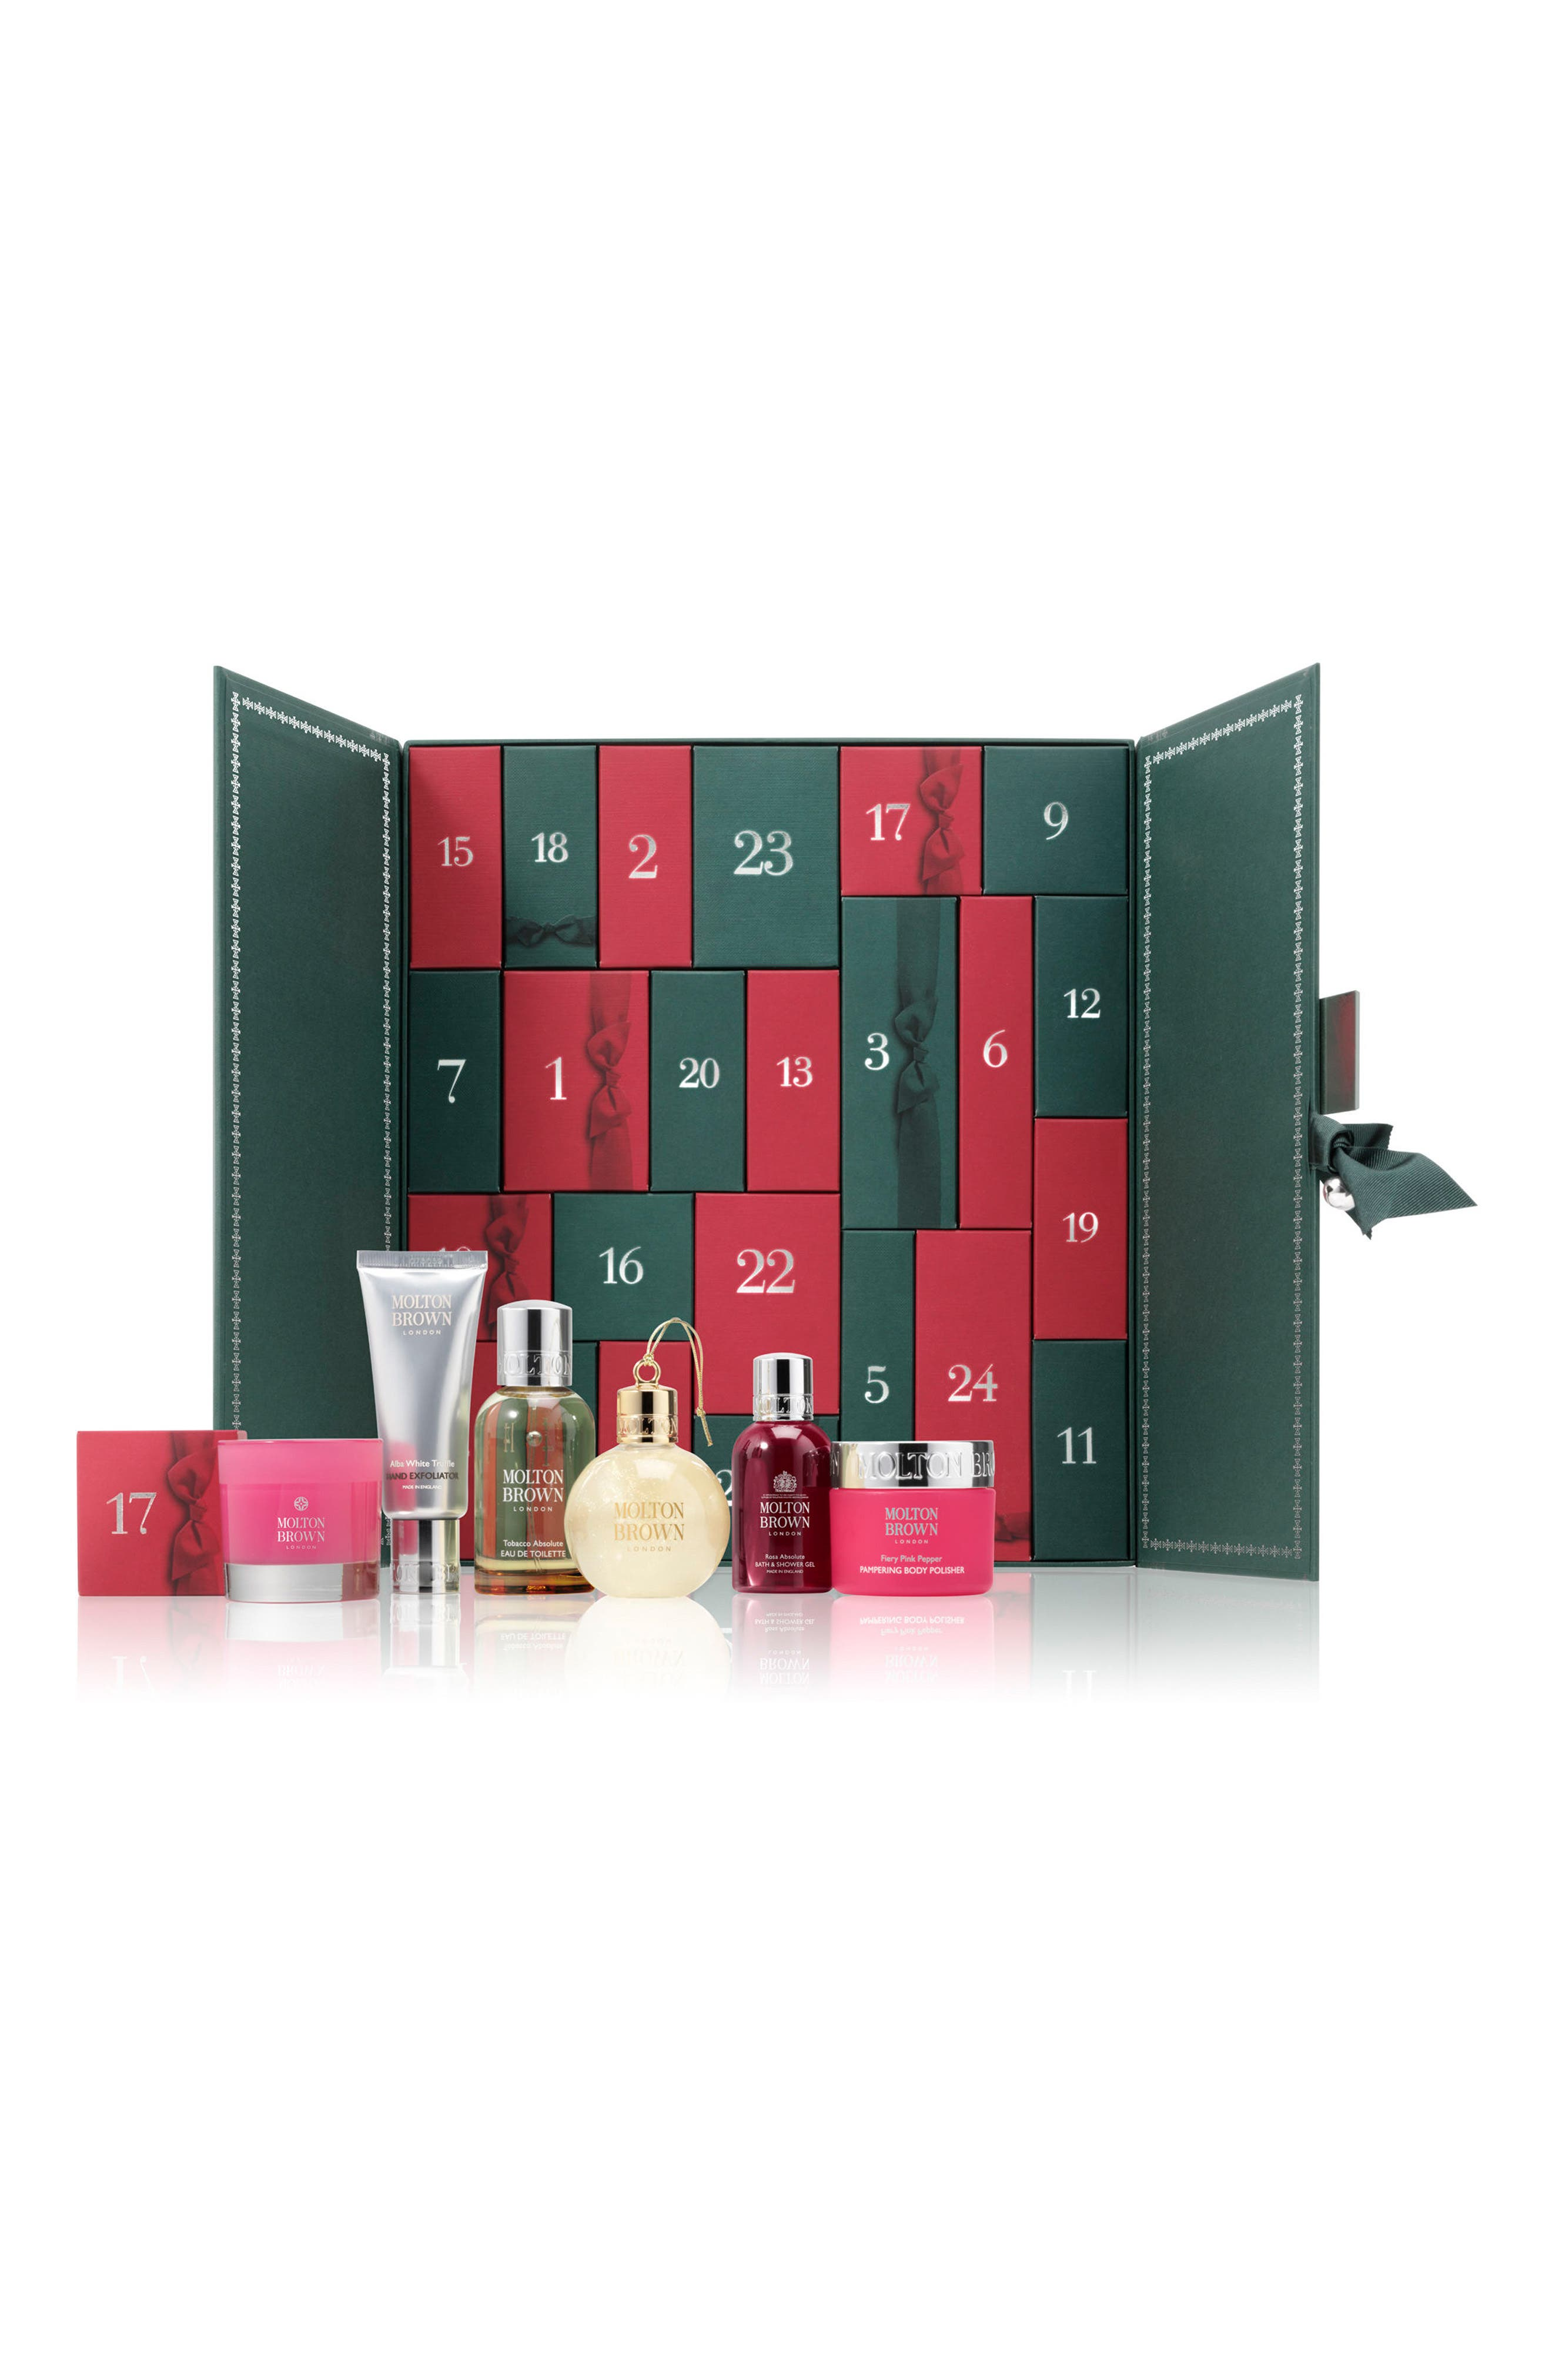 MOLTON BROWN London Cabinet of Scented Luxuries Advent Calendar ($358 Value)